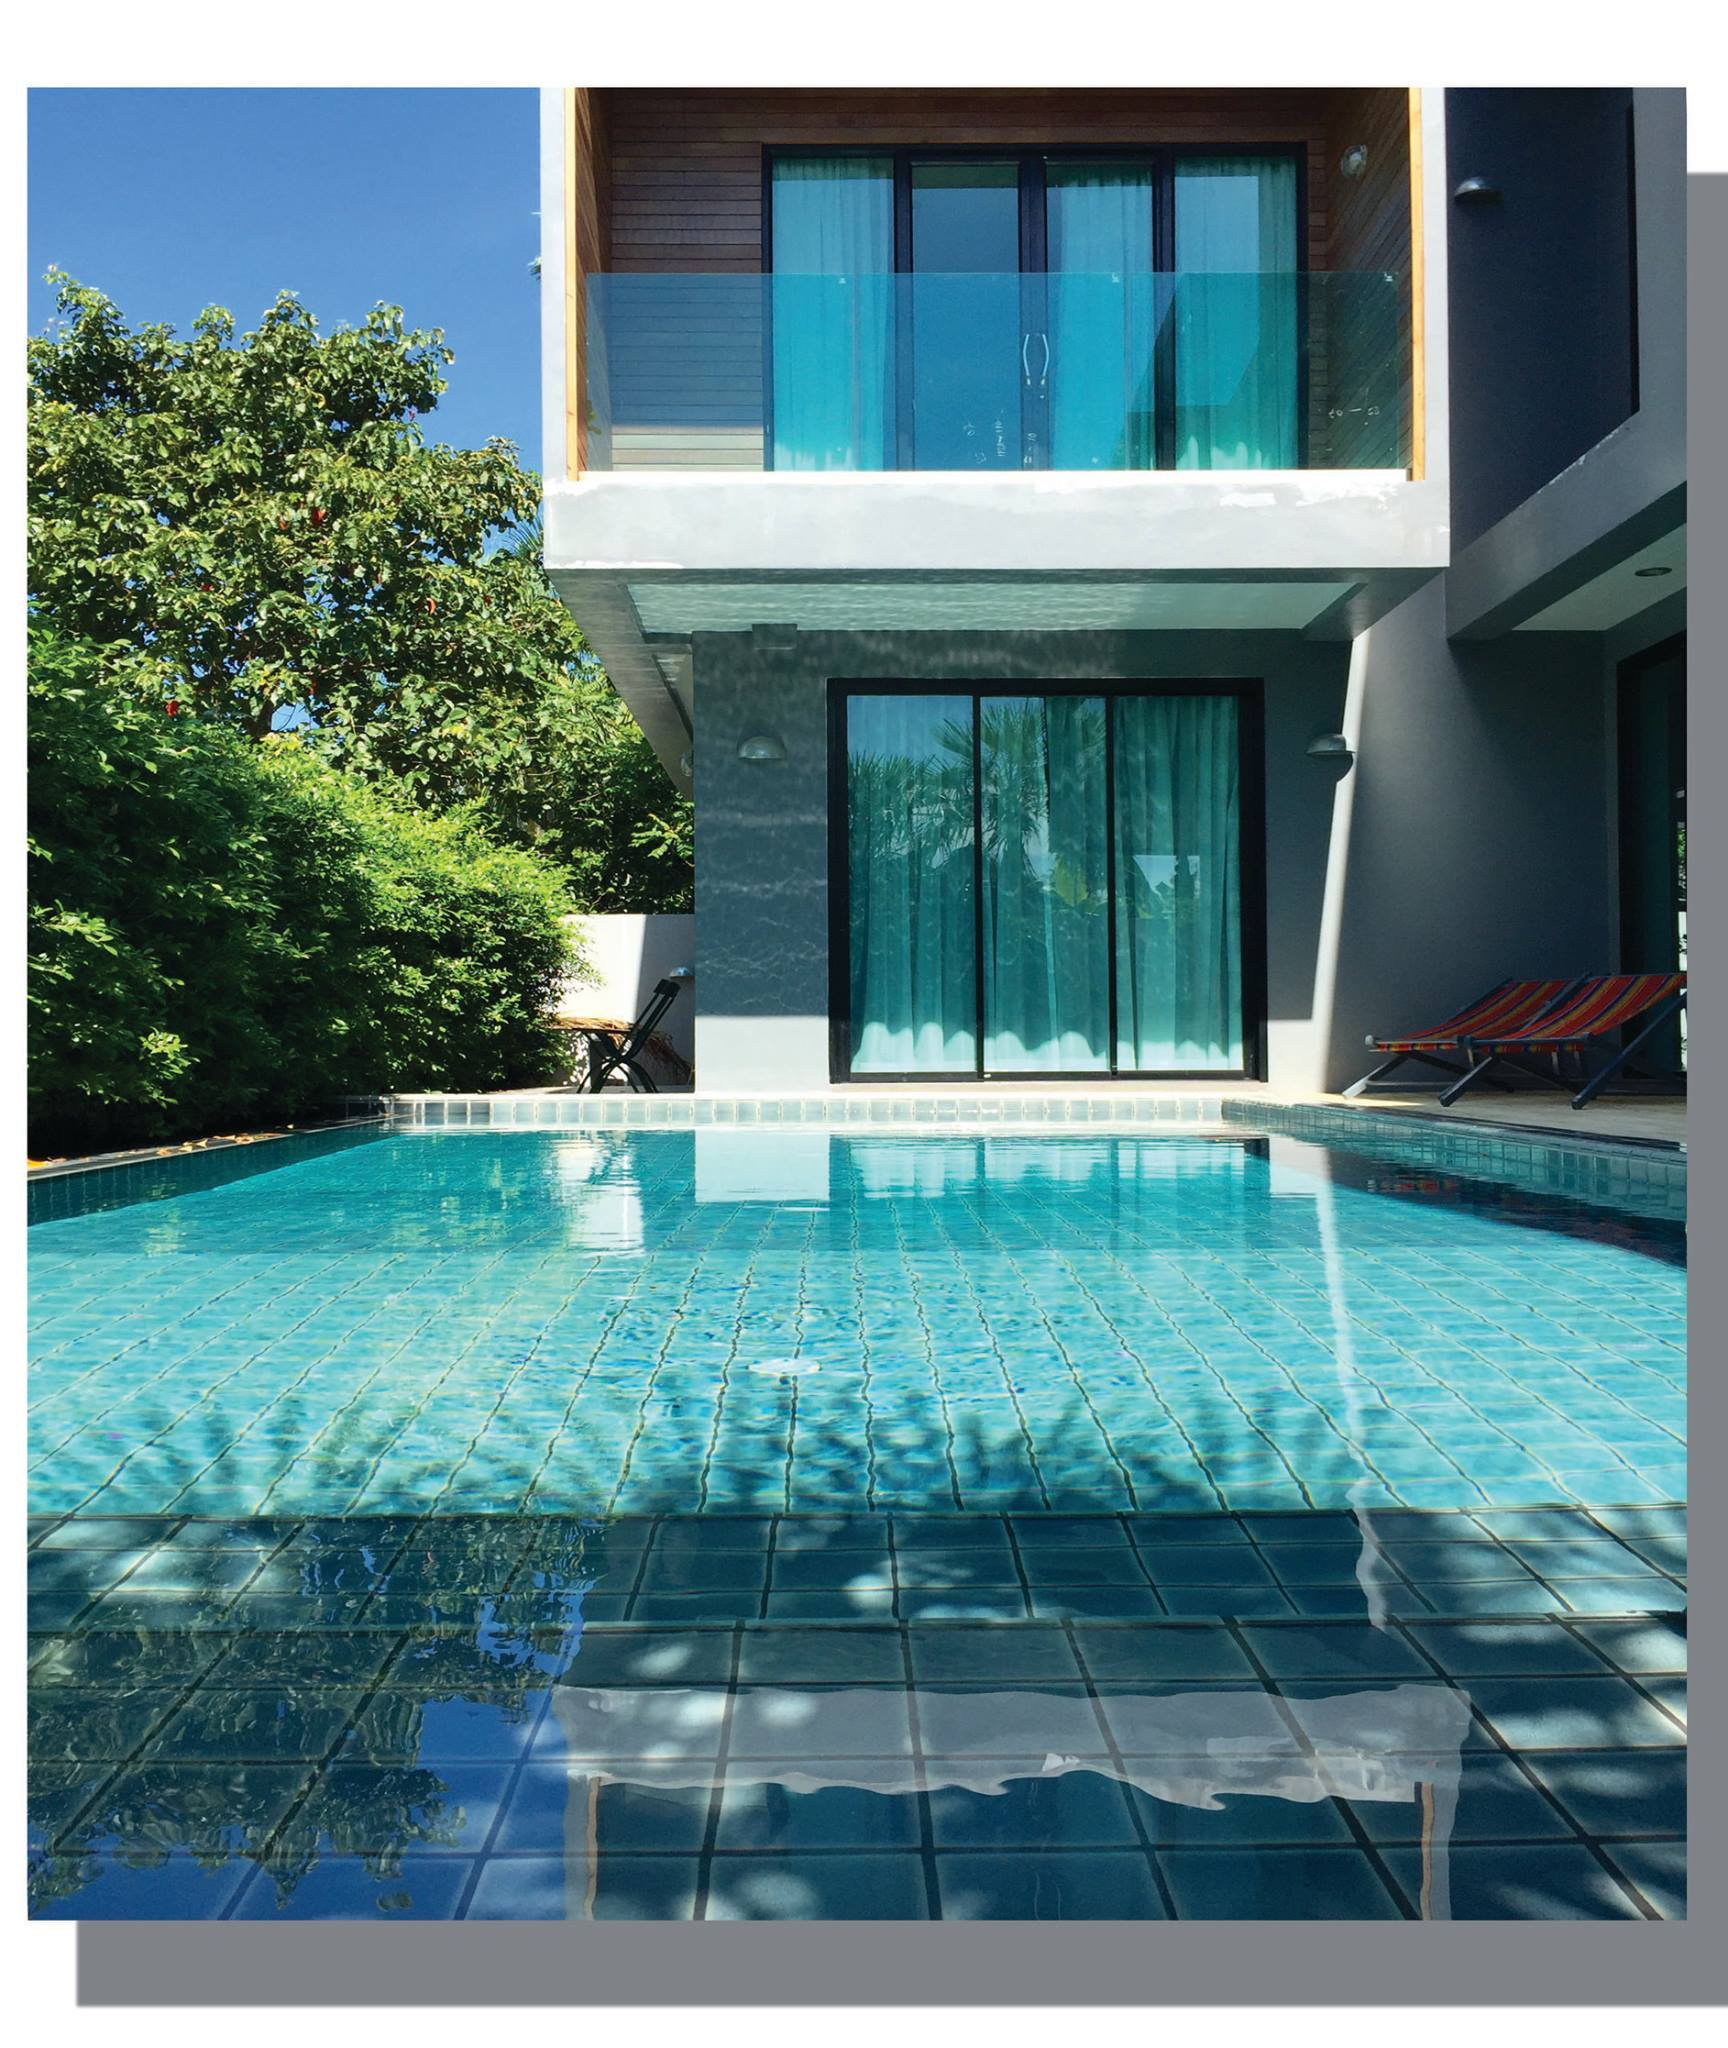 Stylish Pool Villa 3 Bedroom for sale in Cherngtalay